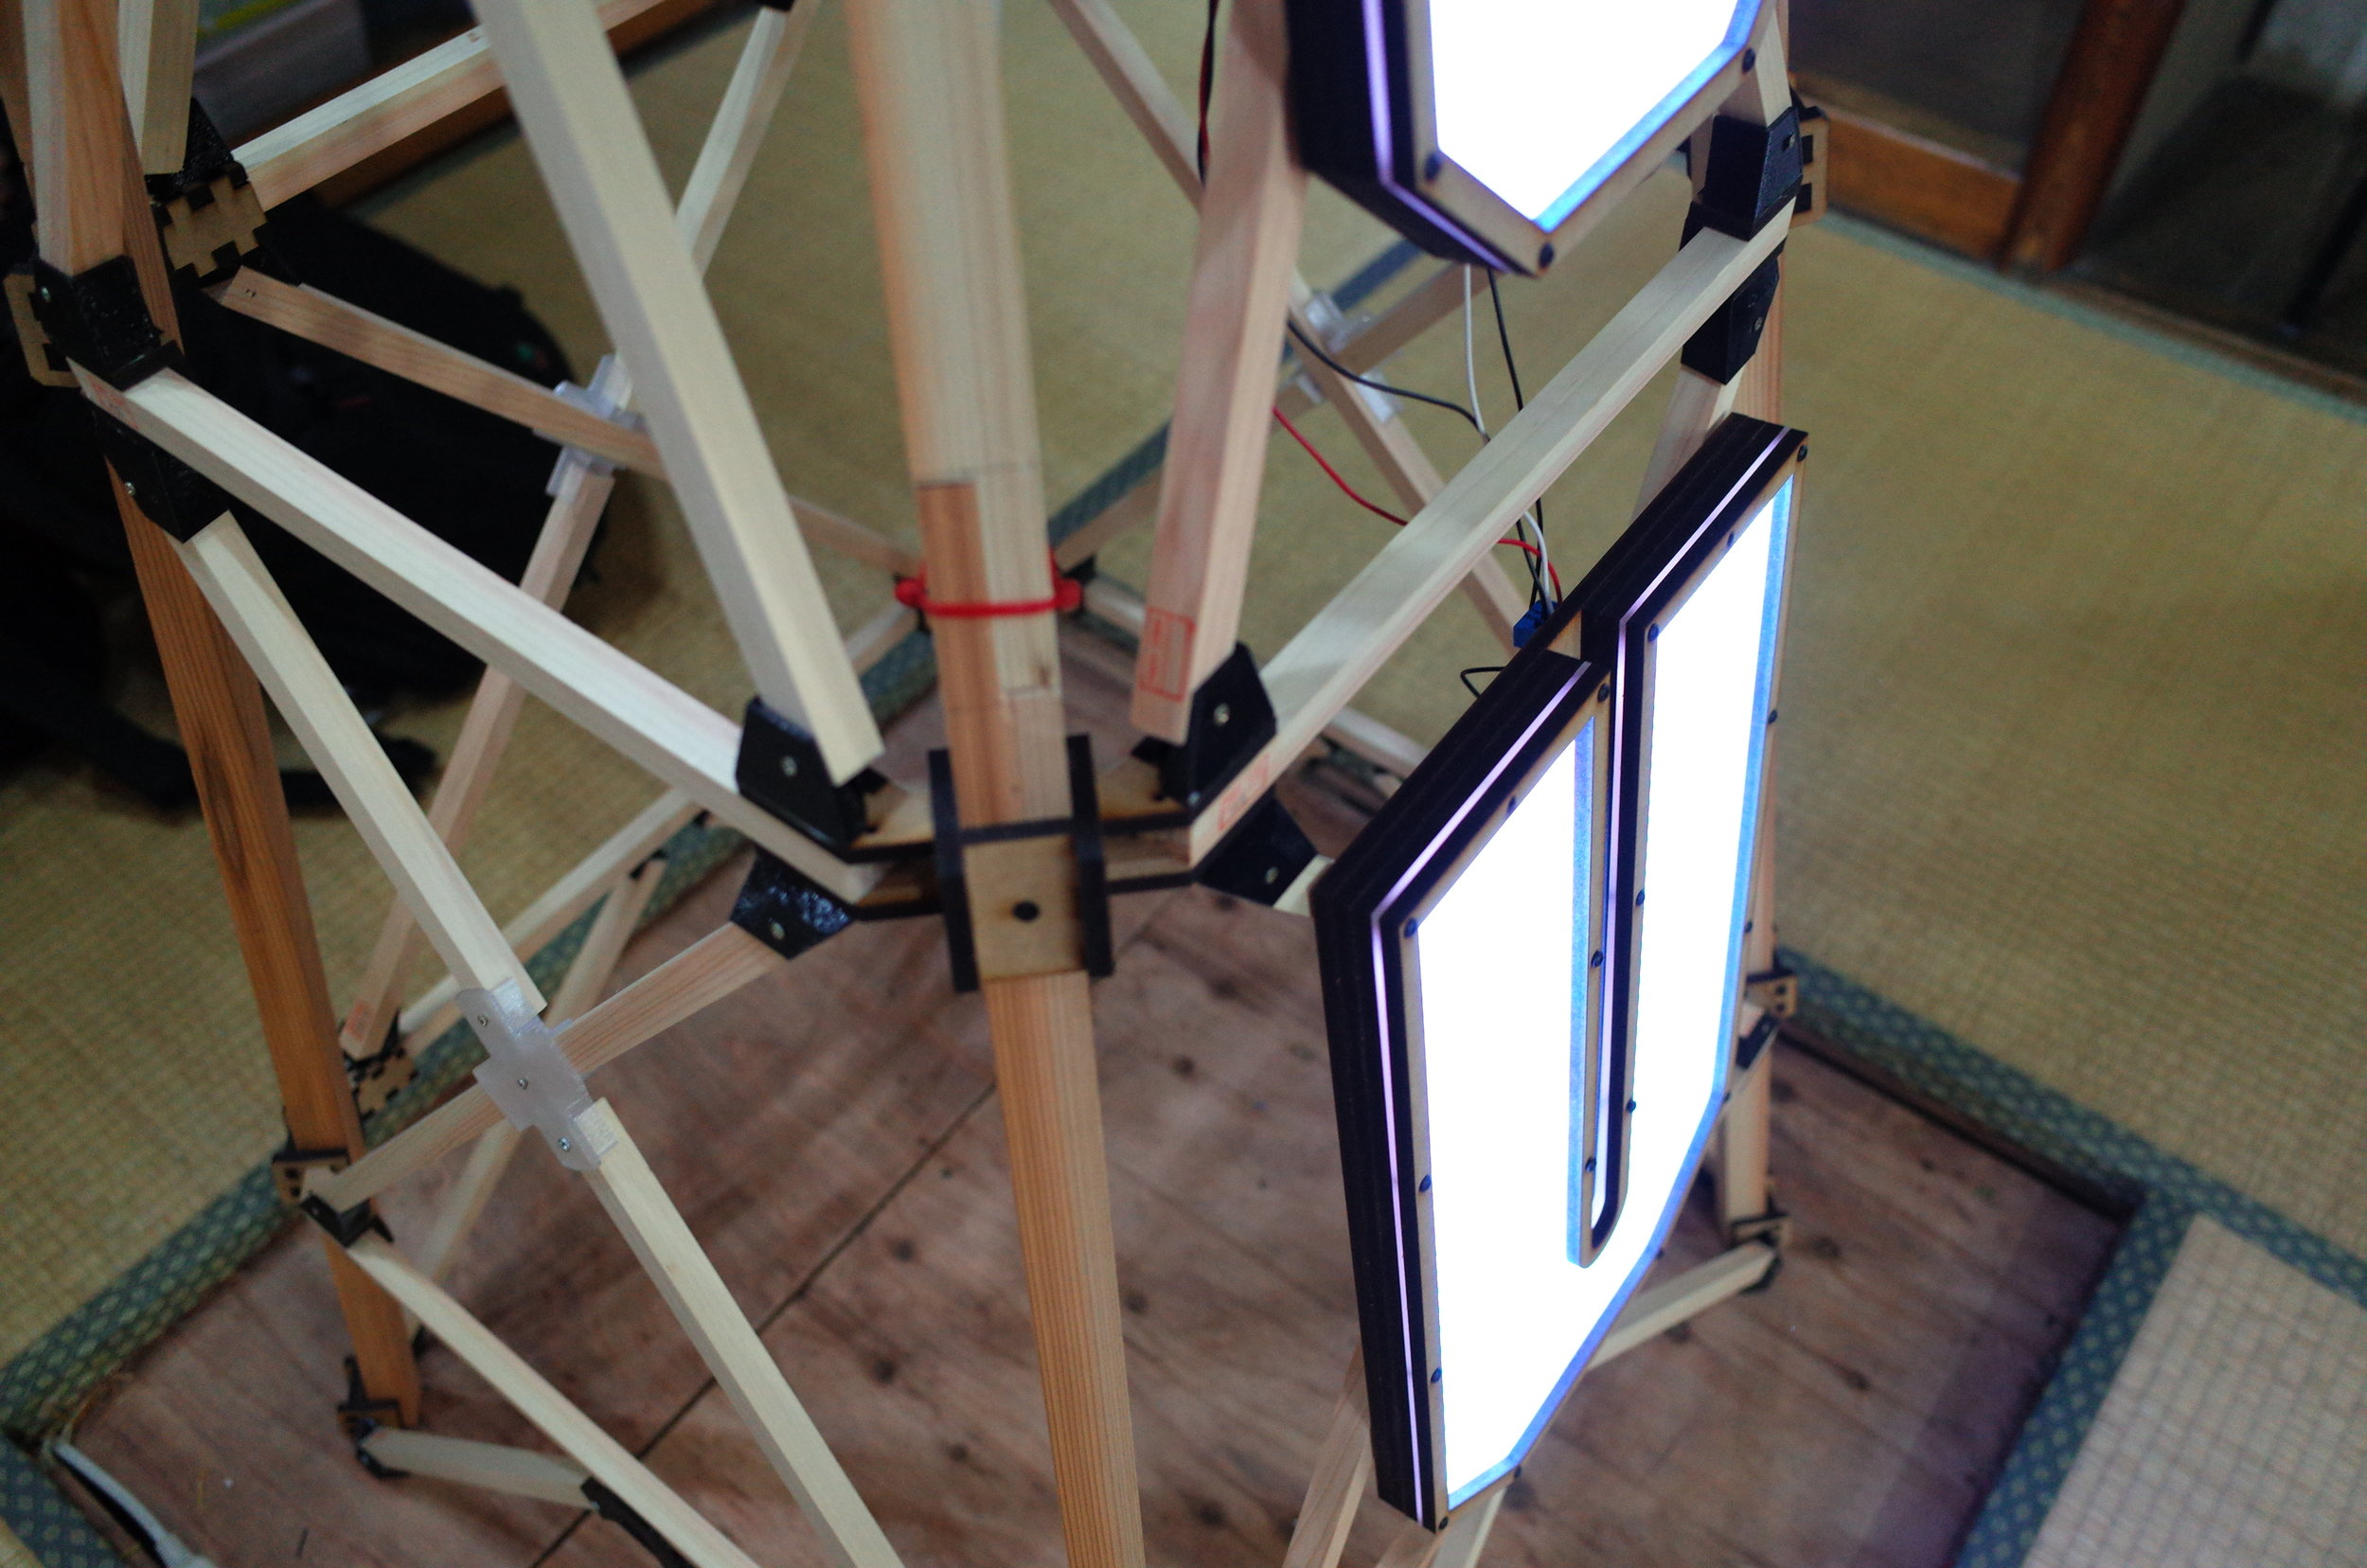 The joints of the tower were made of laser-cut MDF and 3D printed angle parts.